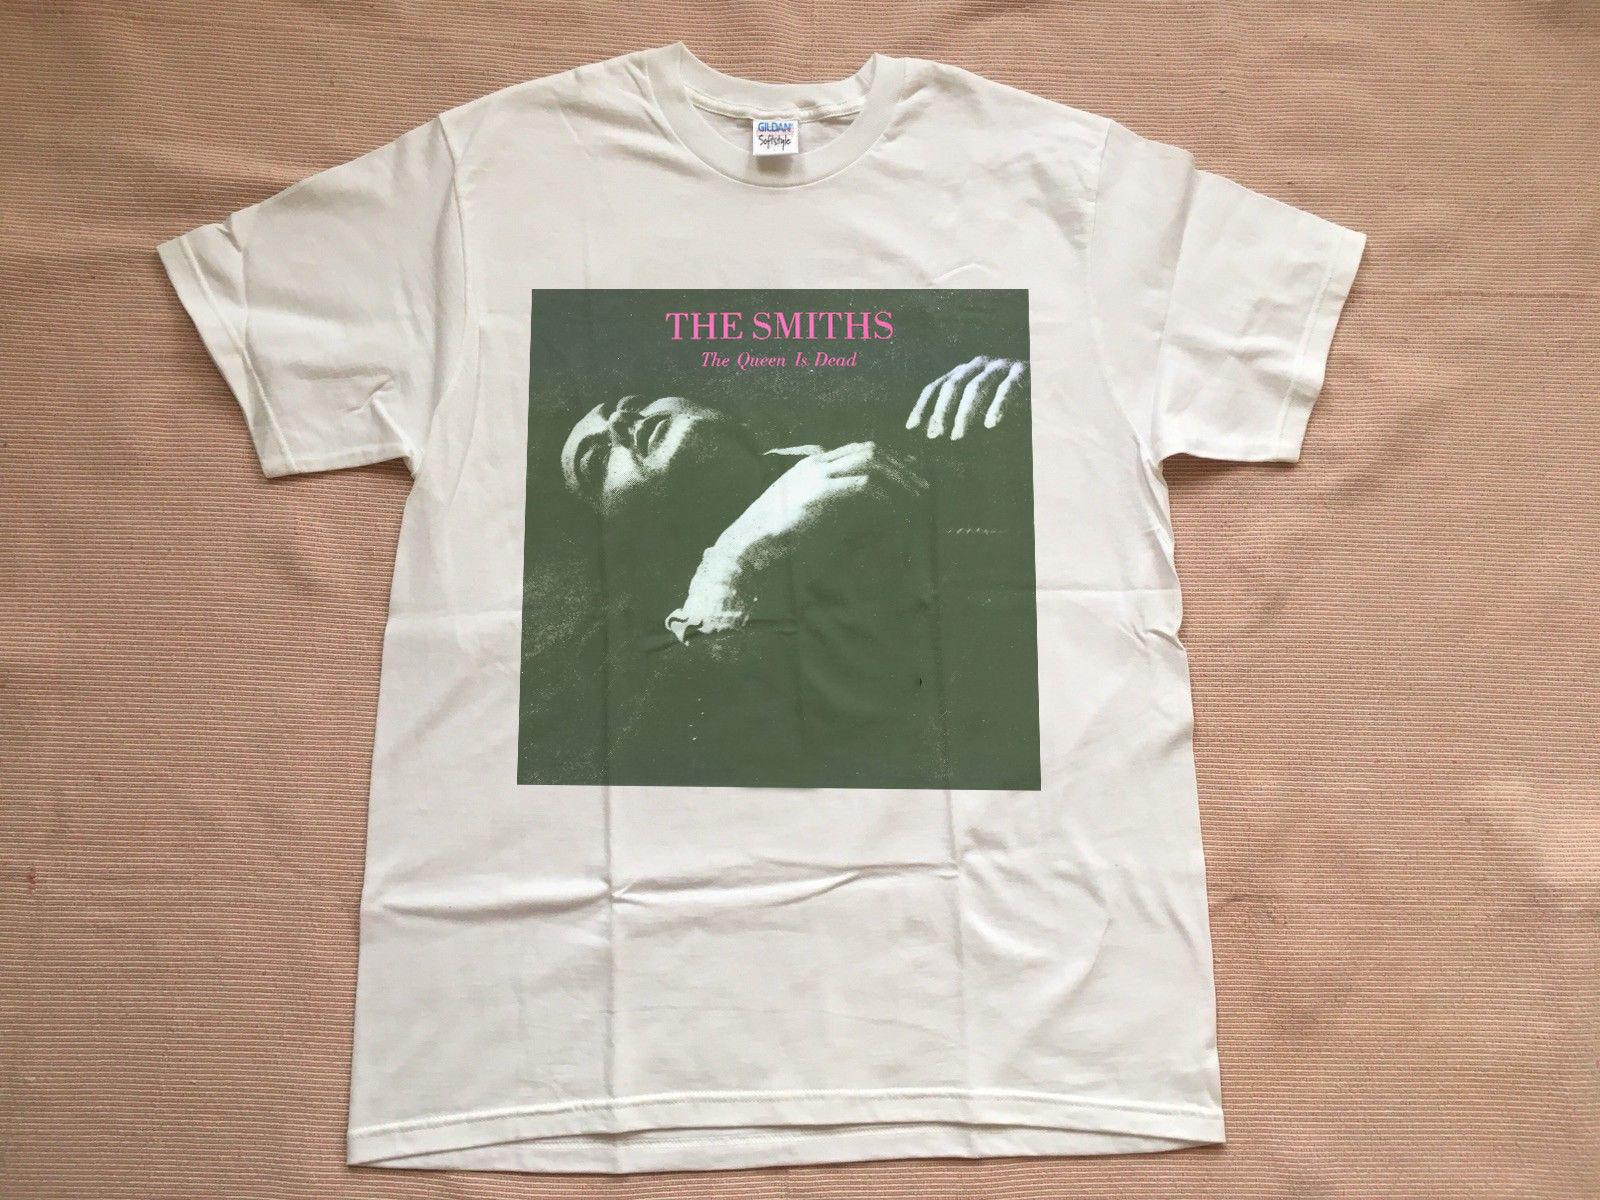 e434782f52ef THE SMITHS Concert T Shirt 1986 Retro Vintage Morrissey Queen Is Dead  Reprint Men Women Unisex Fashion Tshirt Fun Tee Shirts Silly T Shirts From  ...